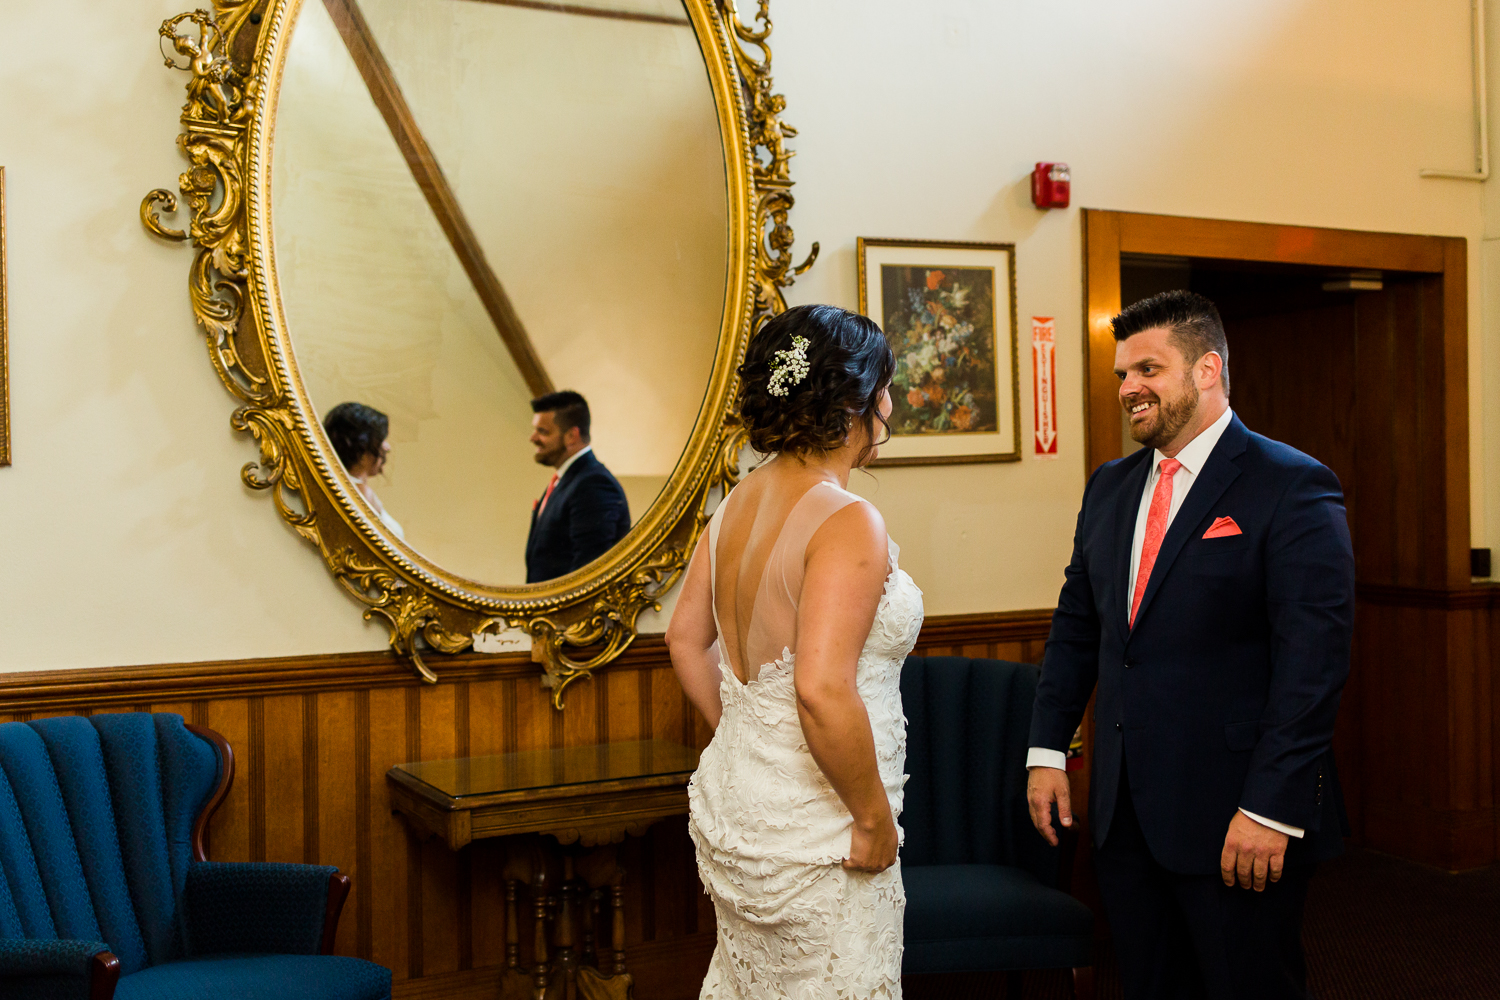 First look between a bride and groom at Belhurst Castle in Geneva, NY.